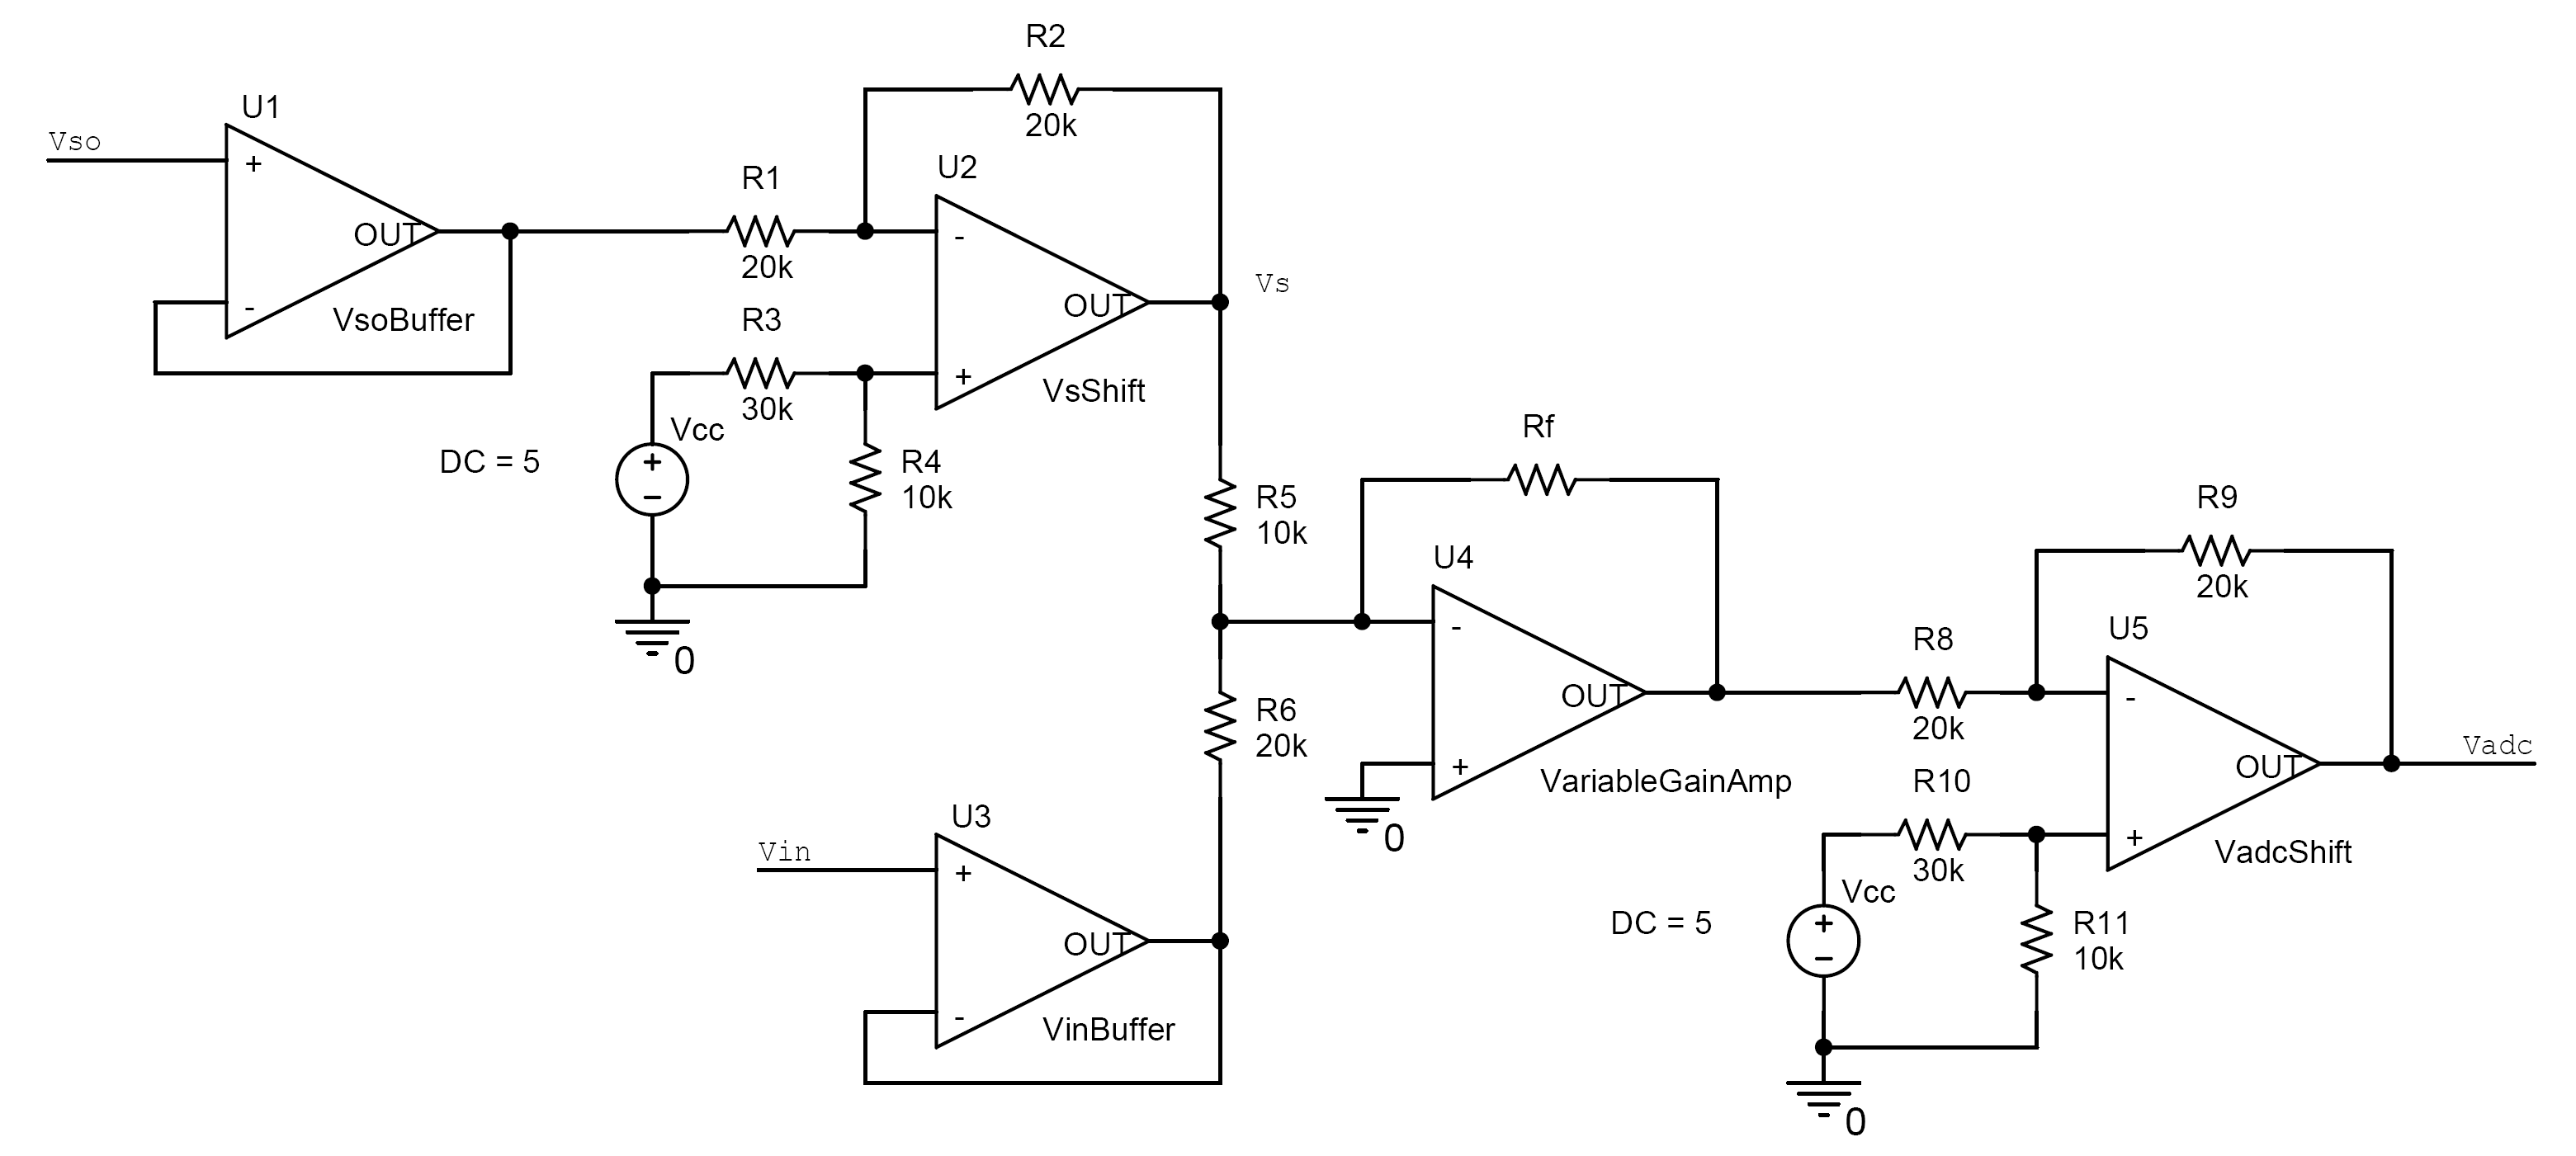 Yi Yao Oscilloscope The Cmos Logic Probe Circuit Amplifiercircuit Diagram Vertical Shifter And Amplifier